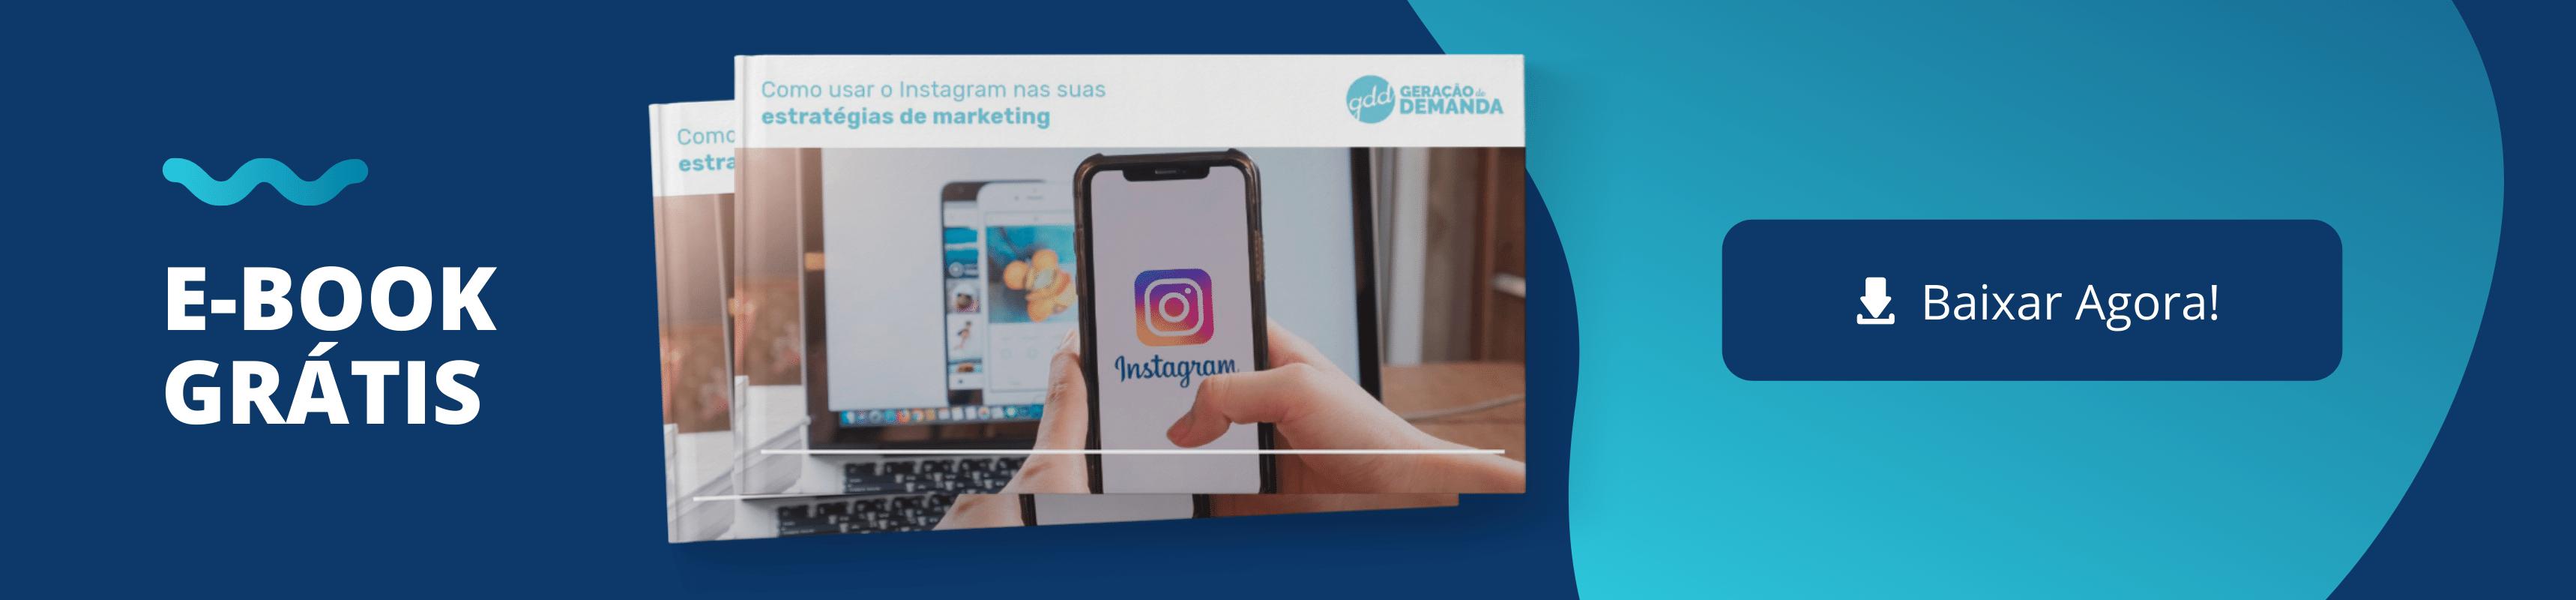 E-book: como usar o Instagram nas suas estratégias de marketing